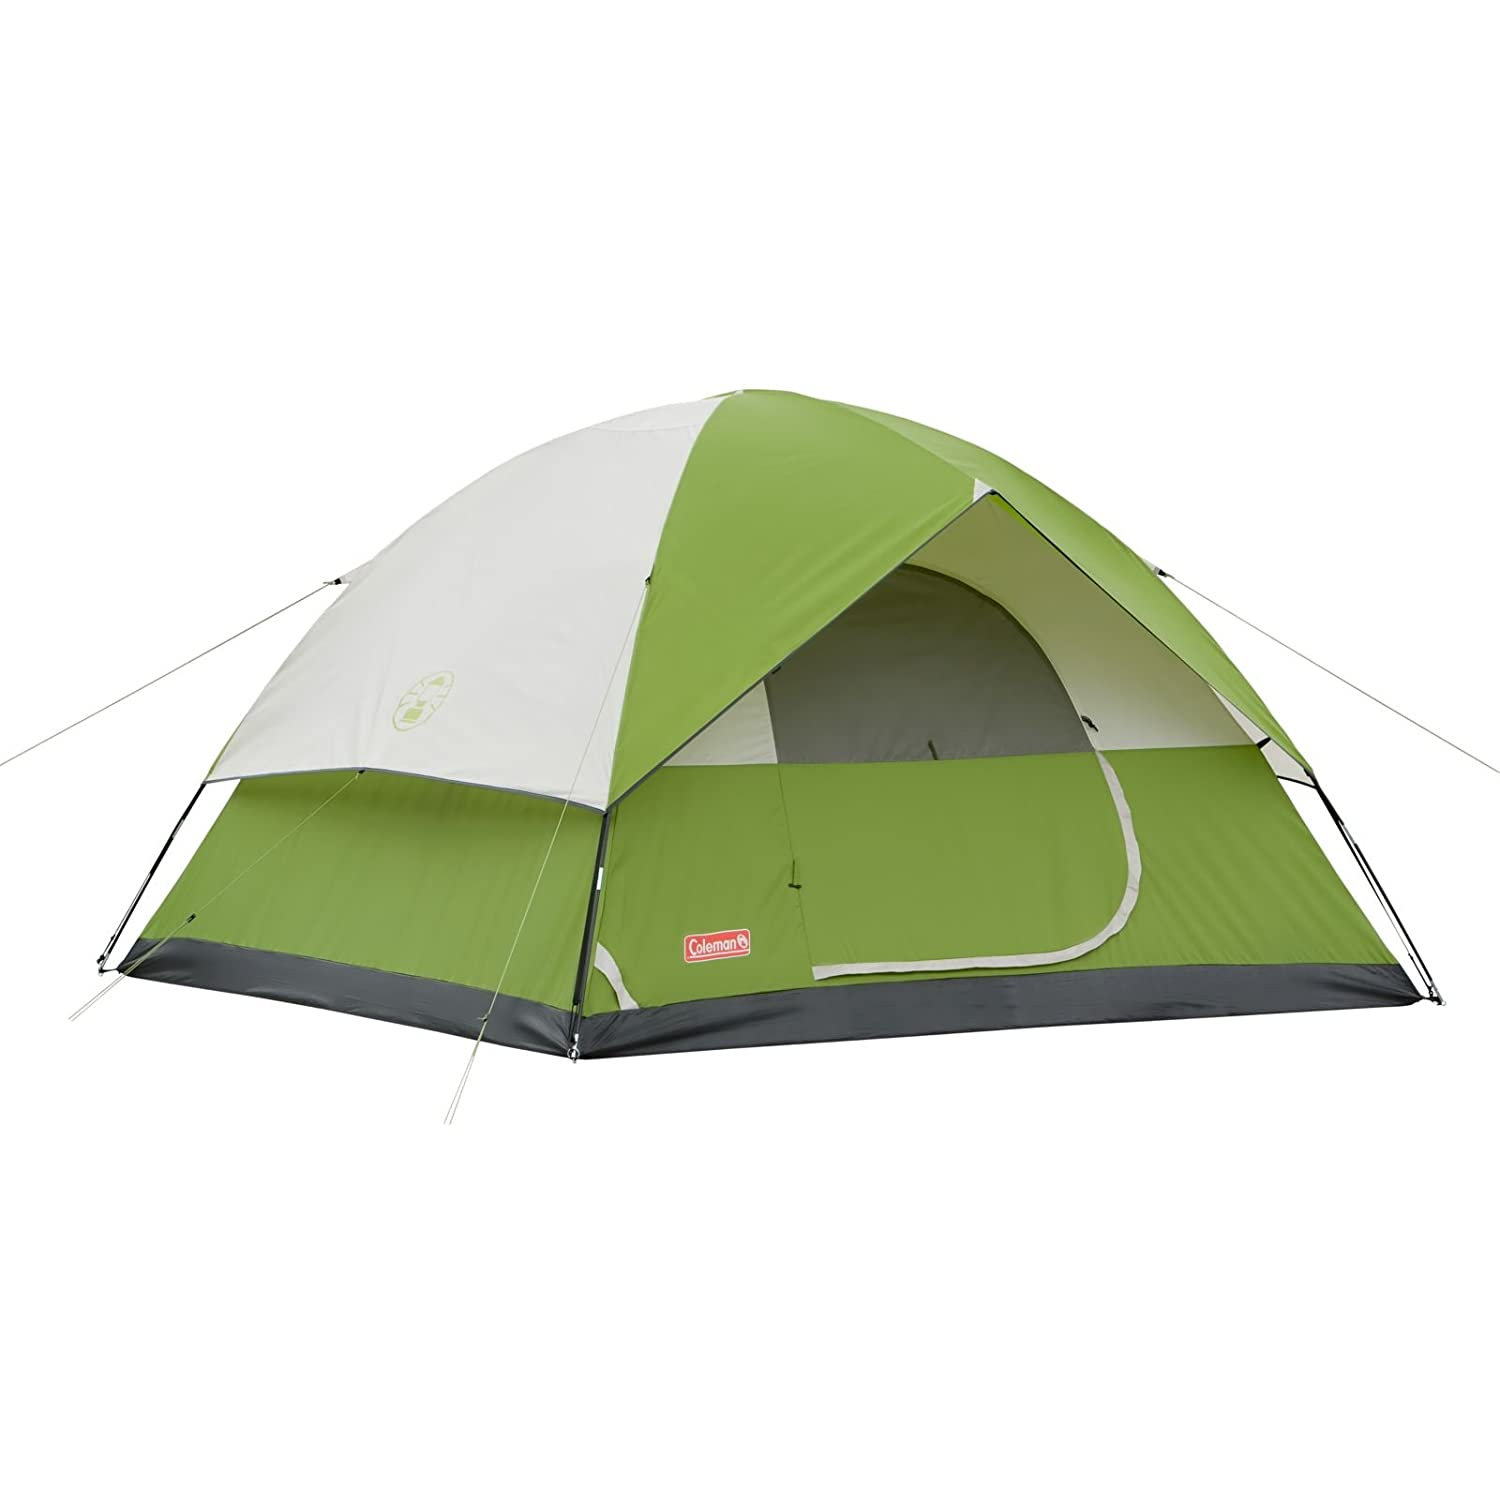 Amazon.com  Coleman Sundome 6-Person Dome Tent  Family Tents  Sports u0026 Outdoors  sc 1 st  Amazon.com : coleman 6 man dome tent - memphite.com